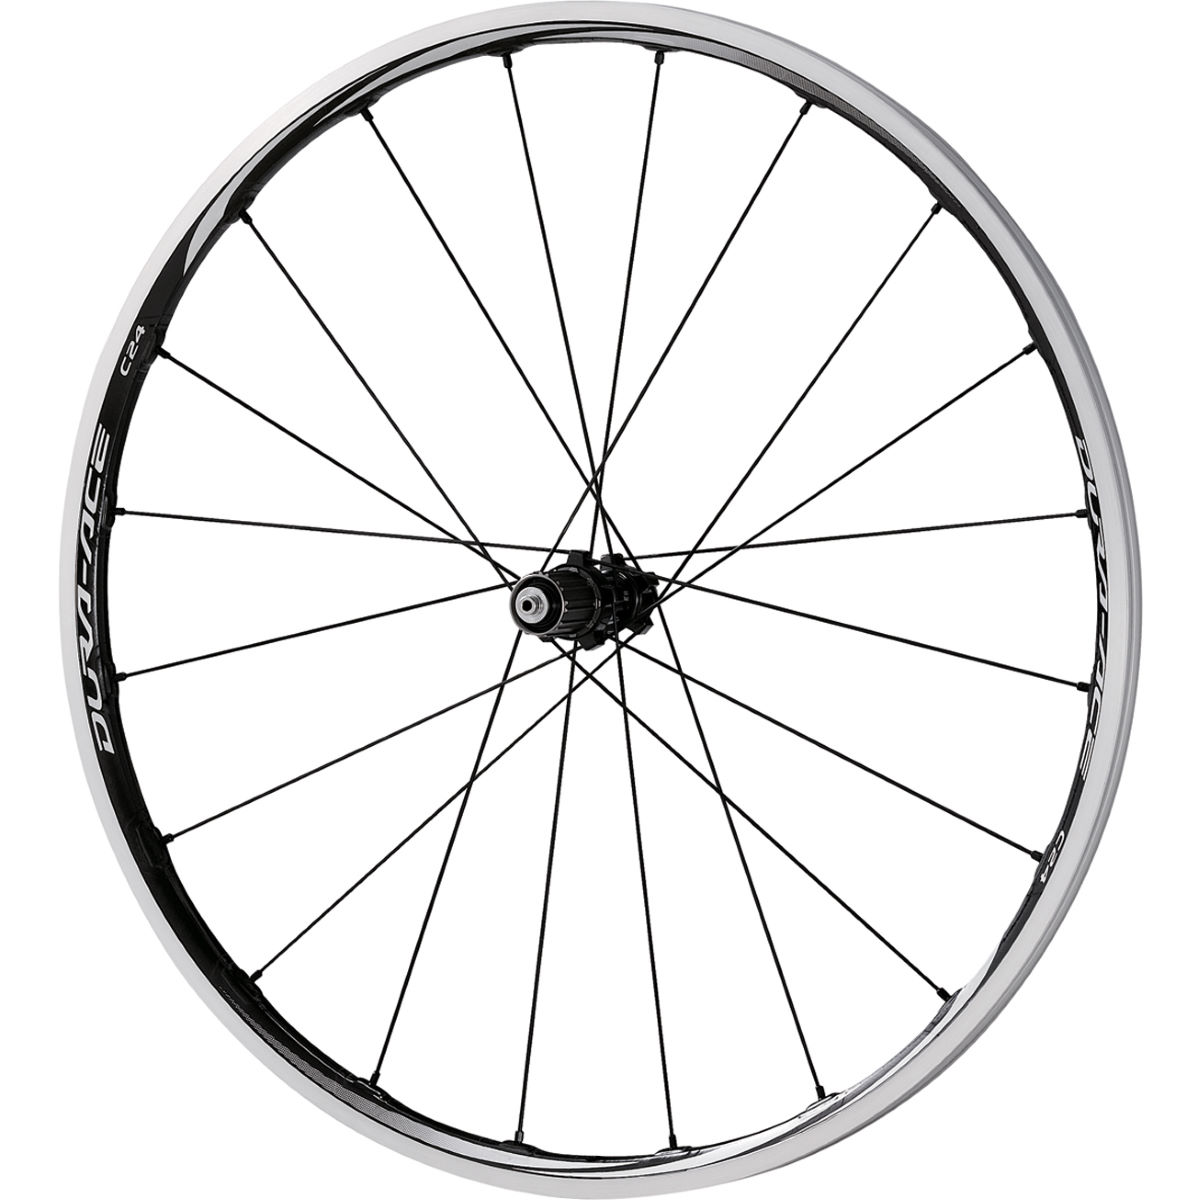 Shimano Dura Ace 9000 C24 Clincher Rear Wheel